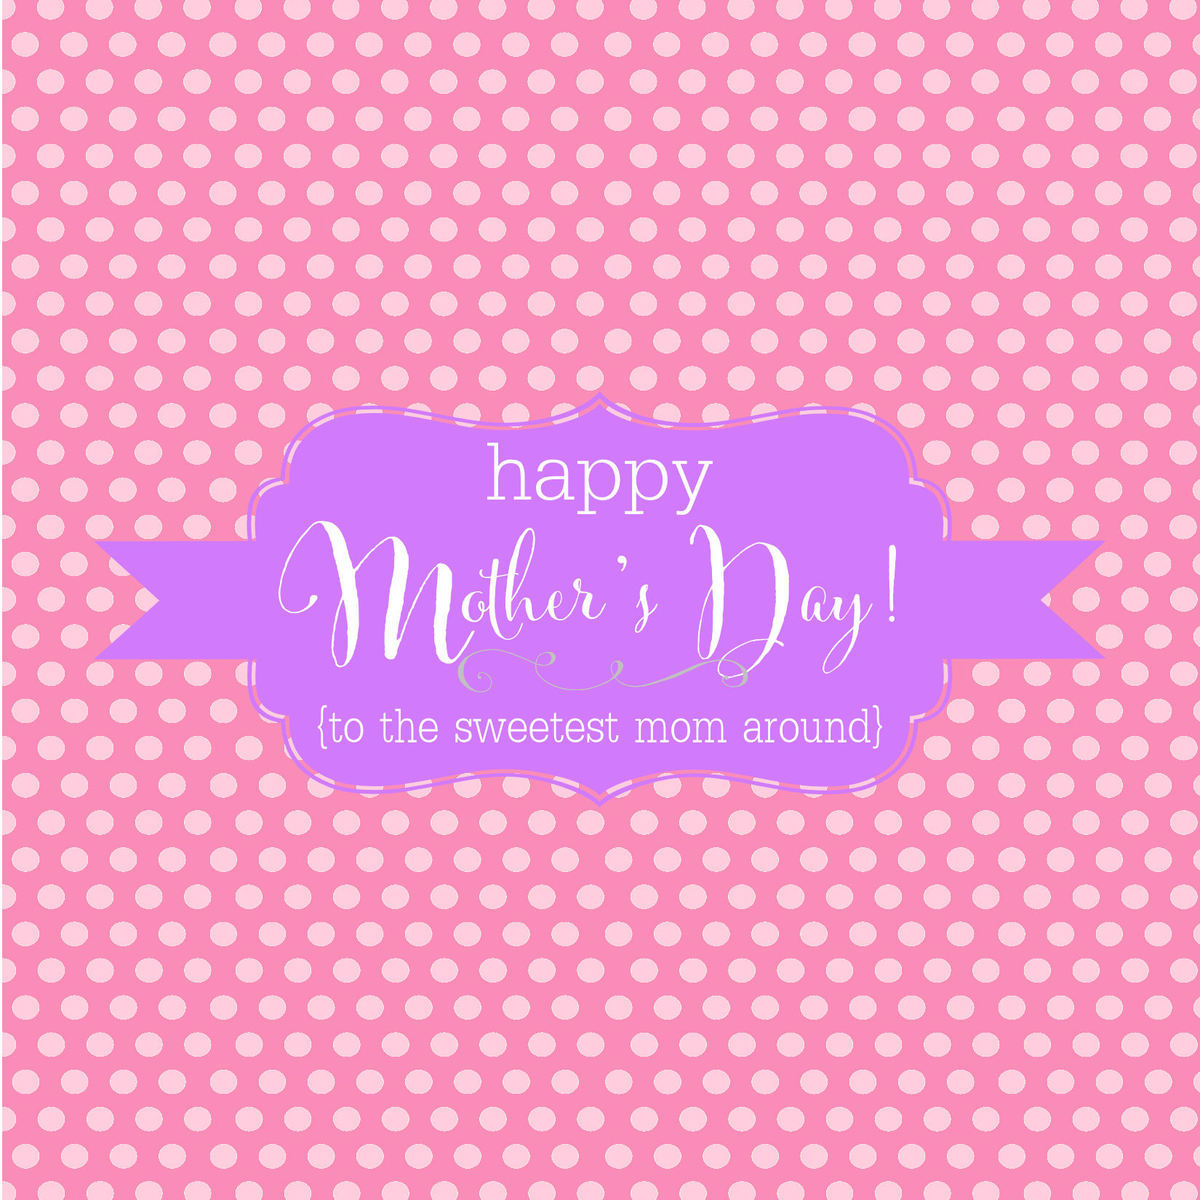 Happy Mothers Day Candy Bar Wrappers - PINK